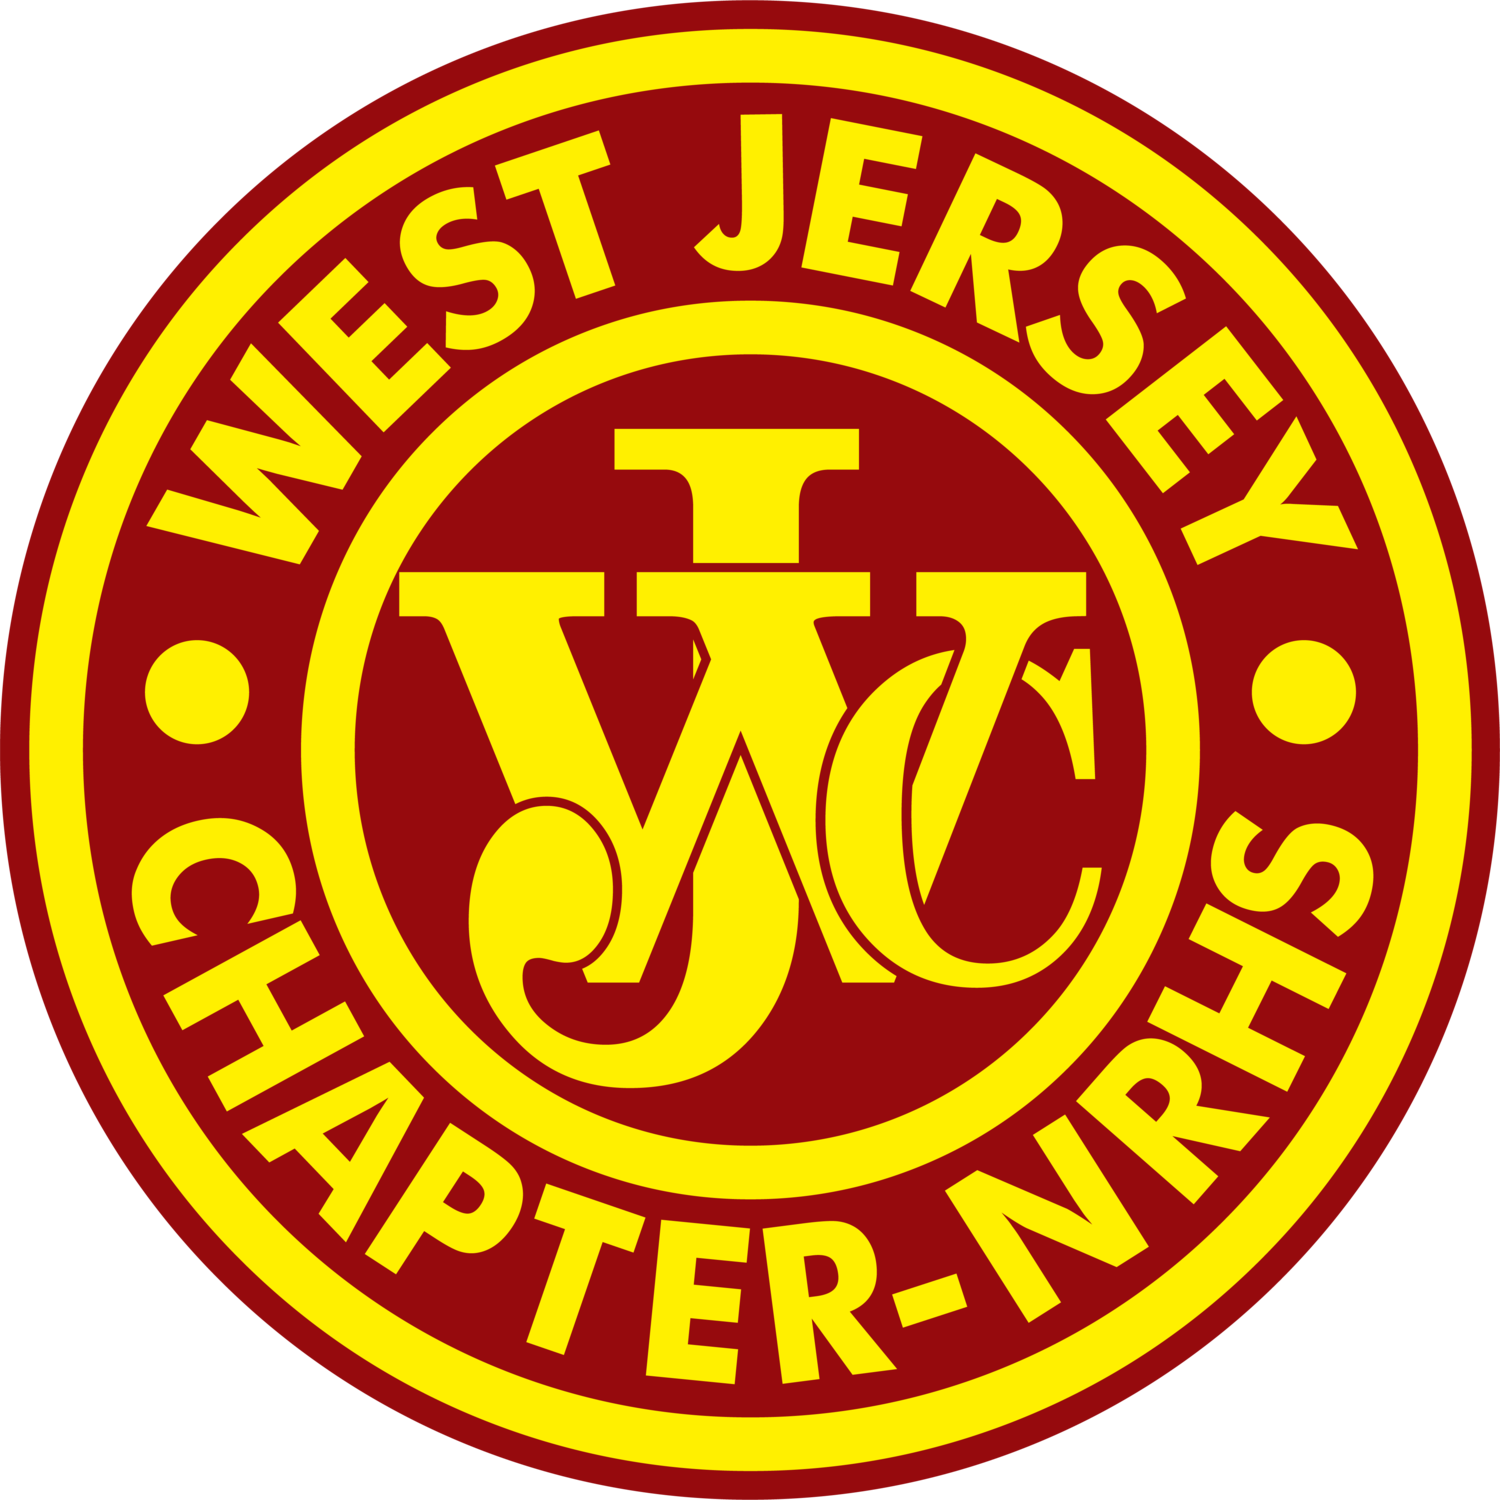 West Jersey Chapter NRHS